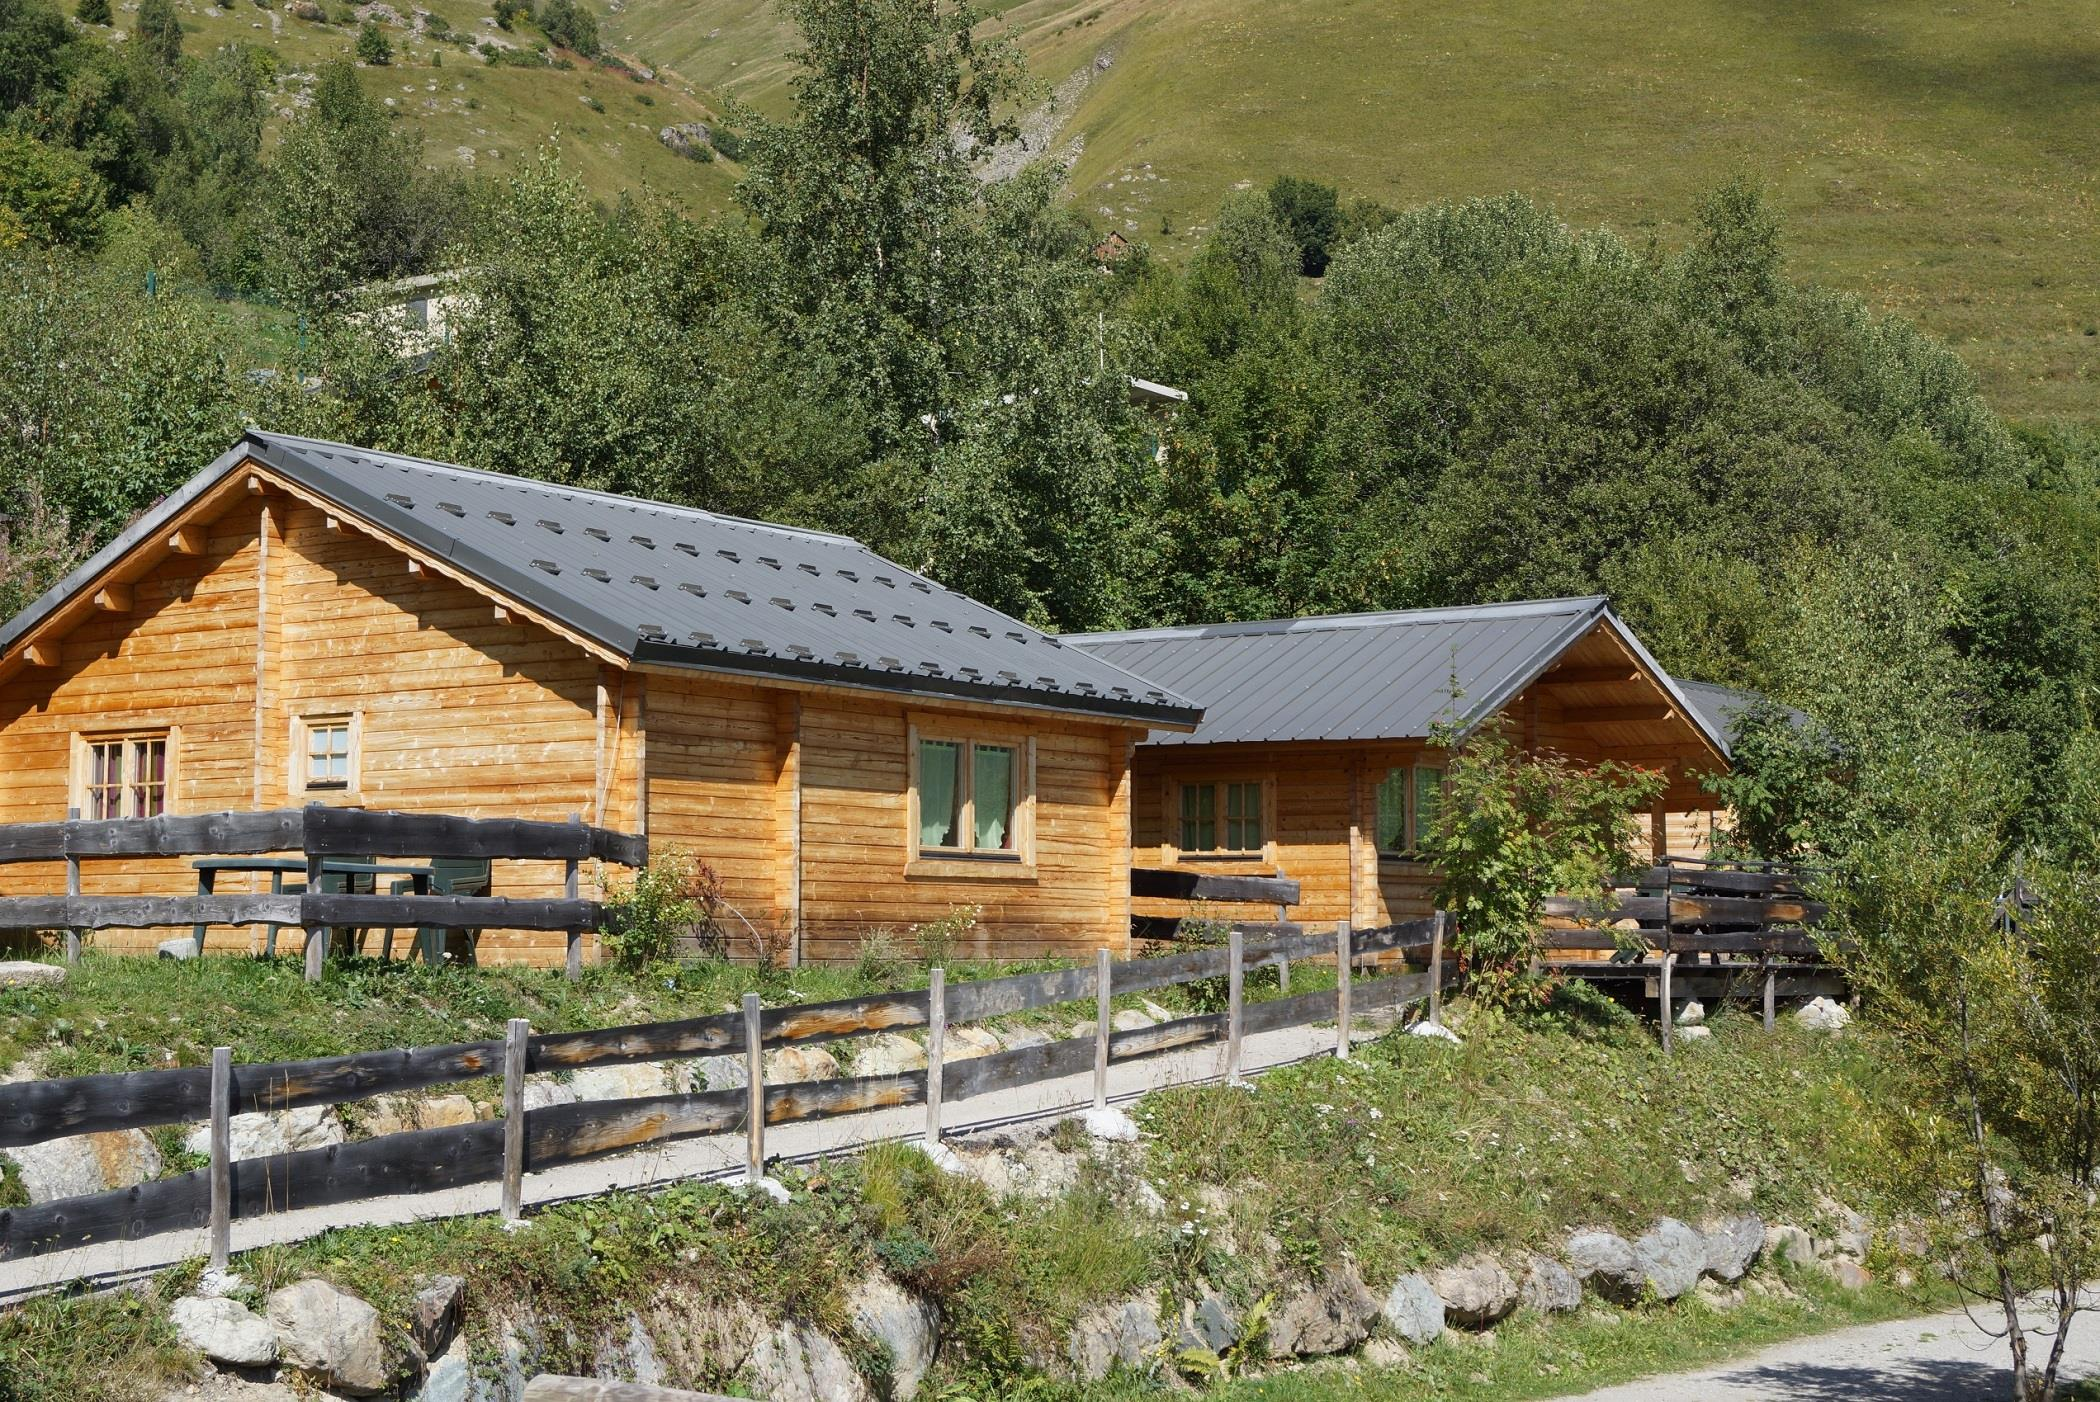 Accommodation - Chalet Myrtille Access+, - Domaine du Trappeur